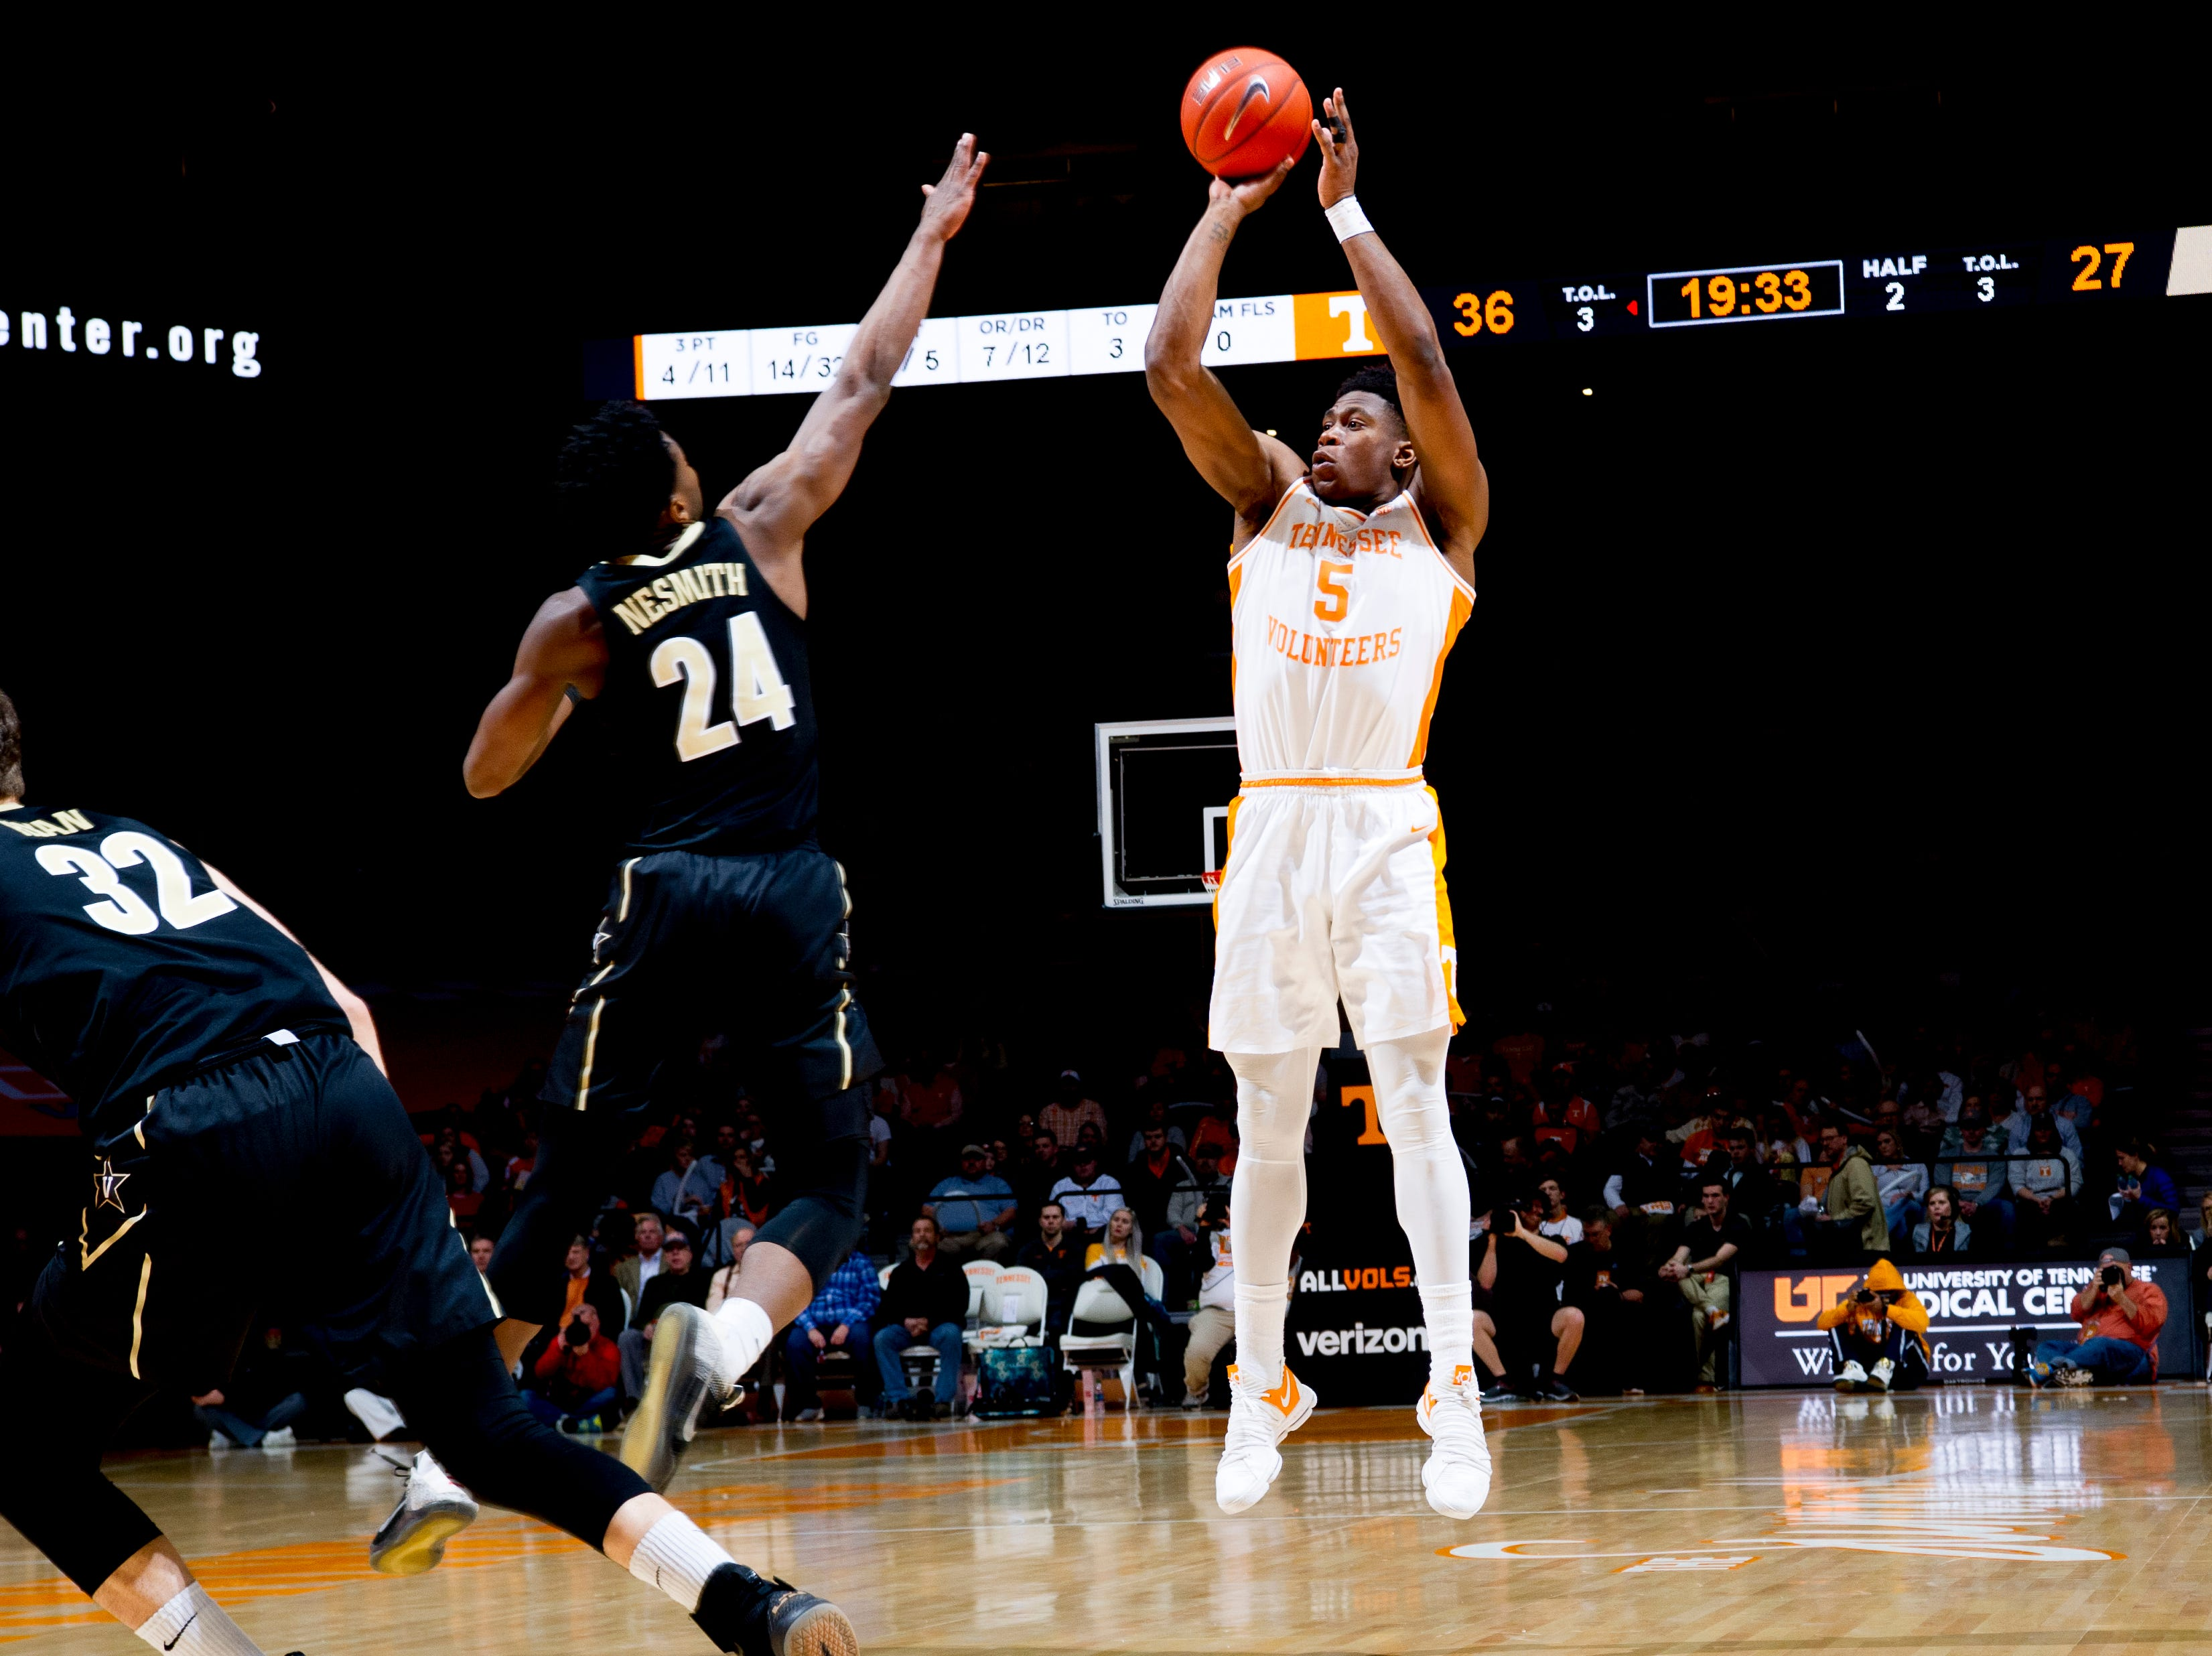 Tennessee guard Admiral Schofield (5) shoots the ball as Vanderbilt forward Aaron Nesmith (24) defends during a game between Tennessee and Vanderbilt at Thompson-Boling Arena in Knoxville, Tennessee on Tuesday, February 19, 2019.